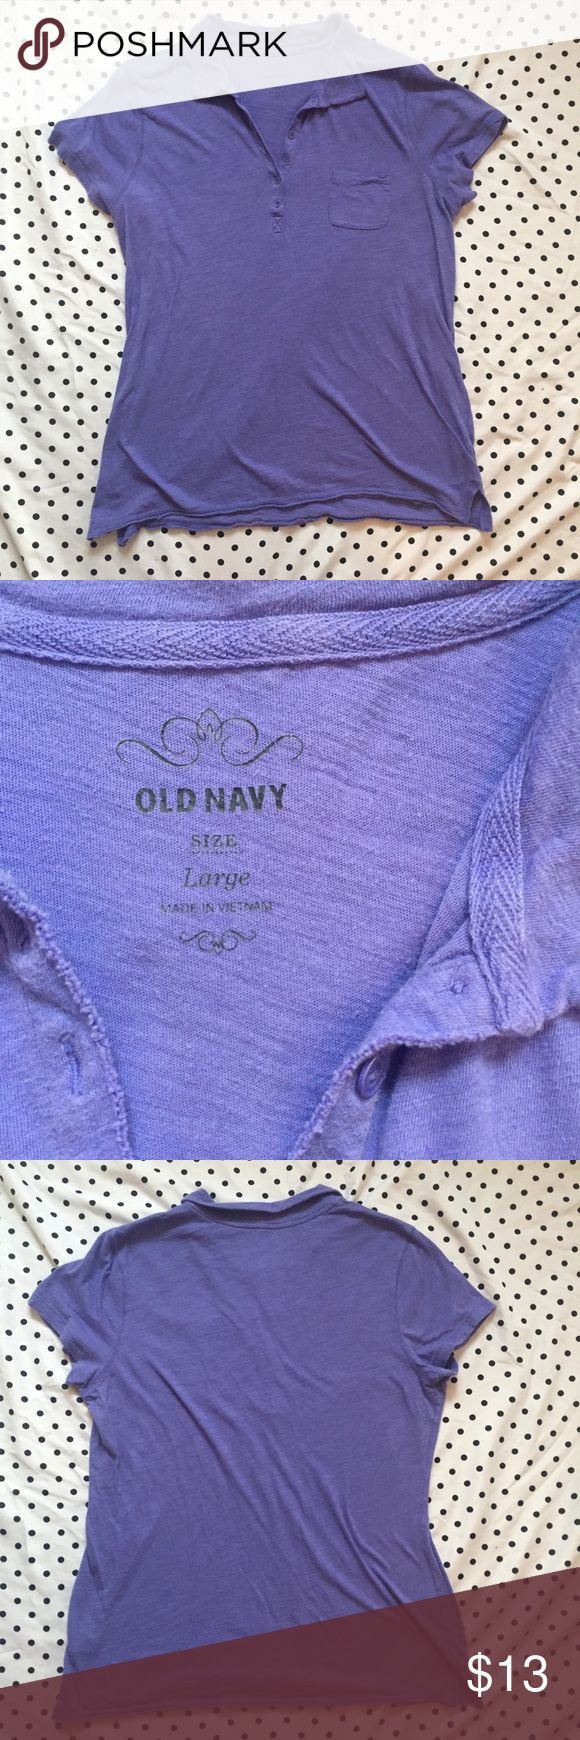 Lavender Purple Old Navy Polo Shirt •Good •Old Navy. Minor wear. Soft T-Shirt material polo collar shirt. Small front pocket.  ~basics, simple, minimal, classic style, preppy~ Old Navy Tops Tees - Short Sleeve